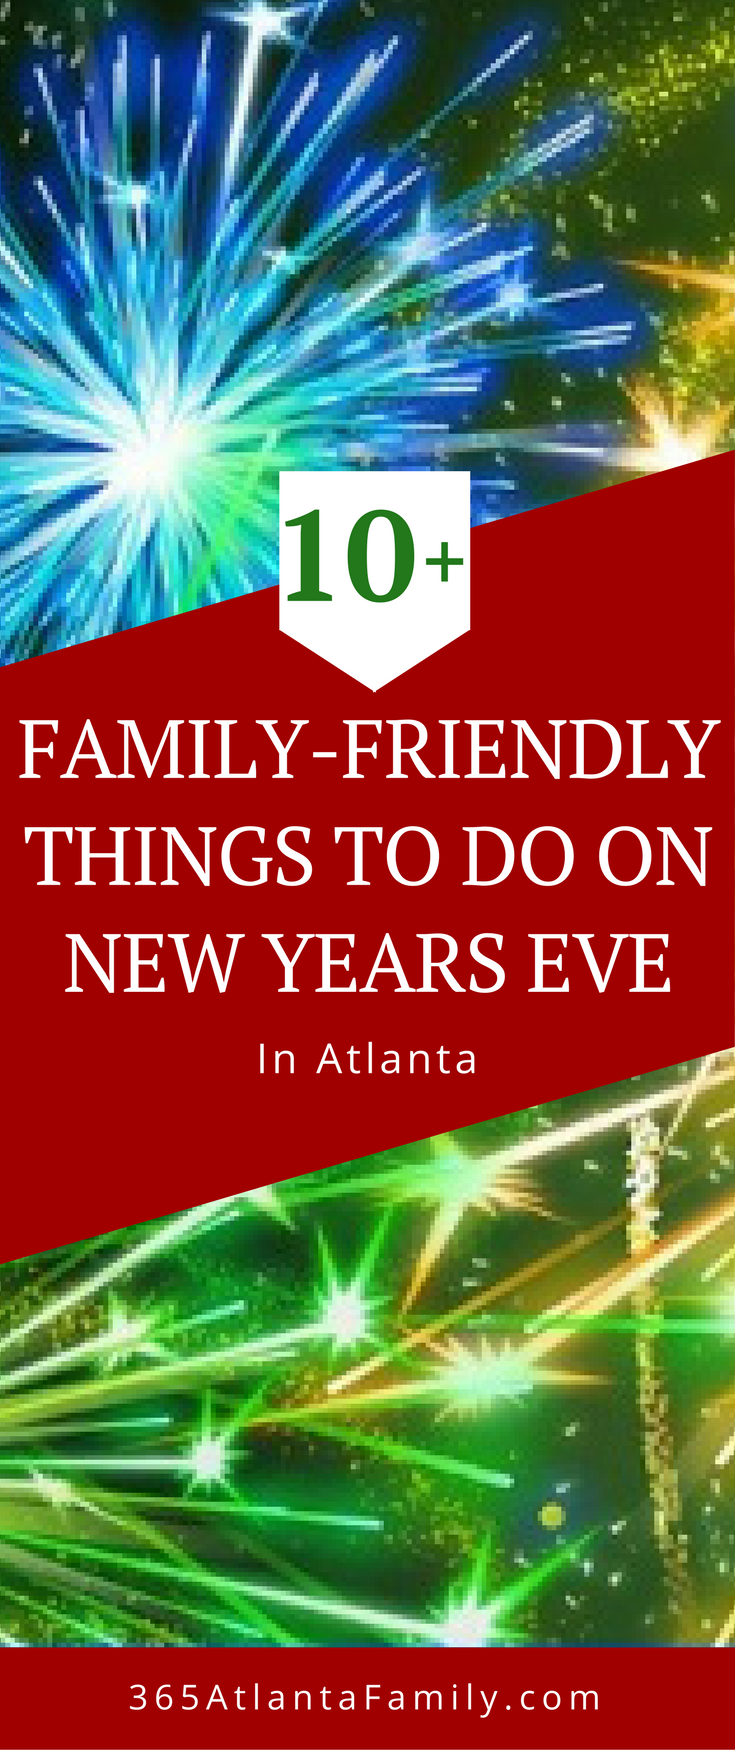 10+ Familyfriendly Things to do on New Years Eve in